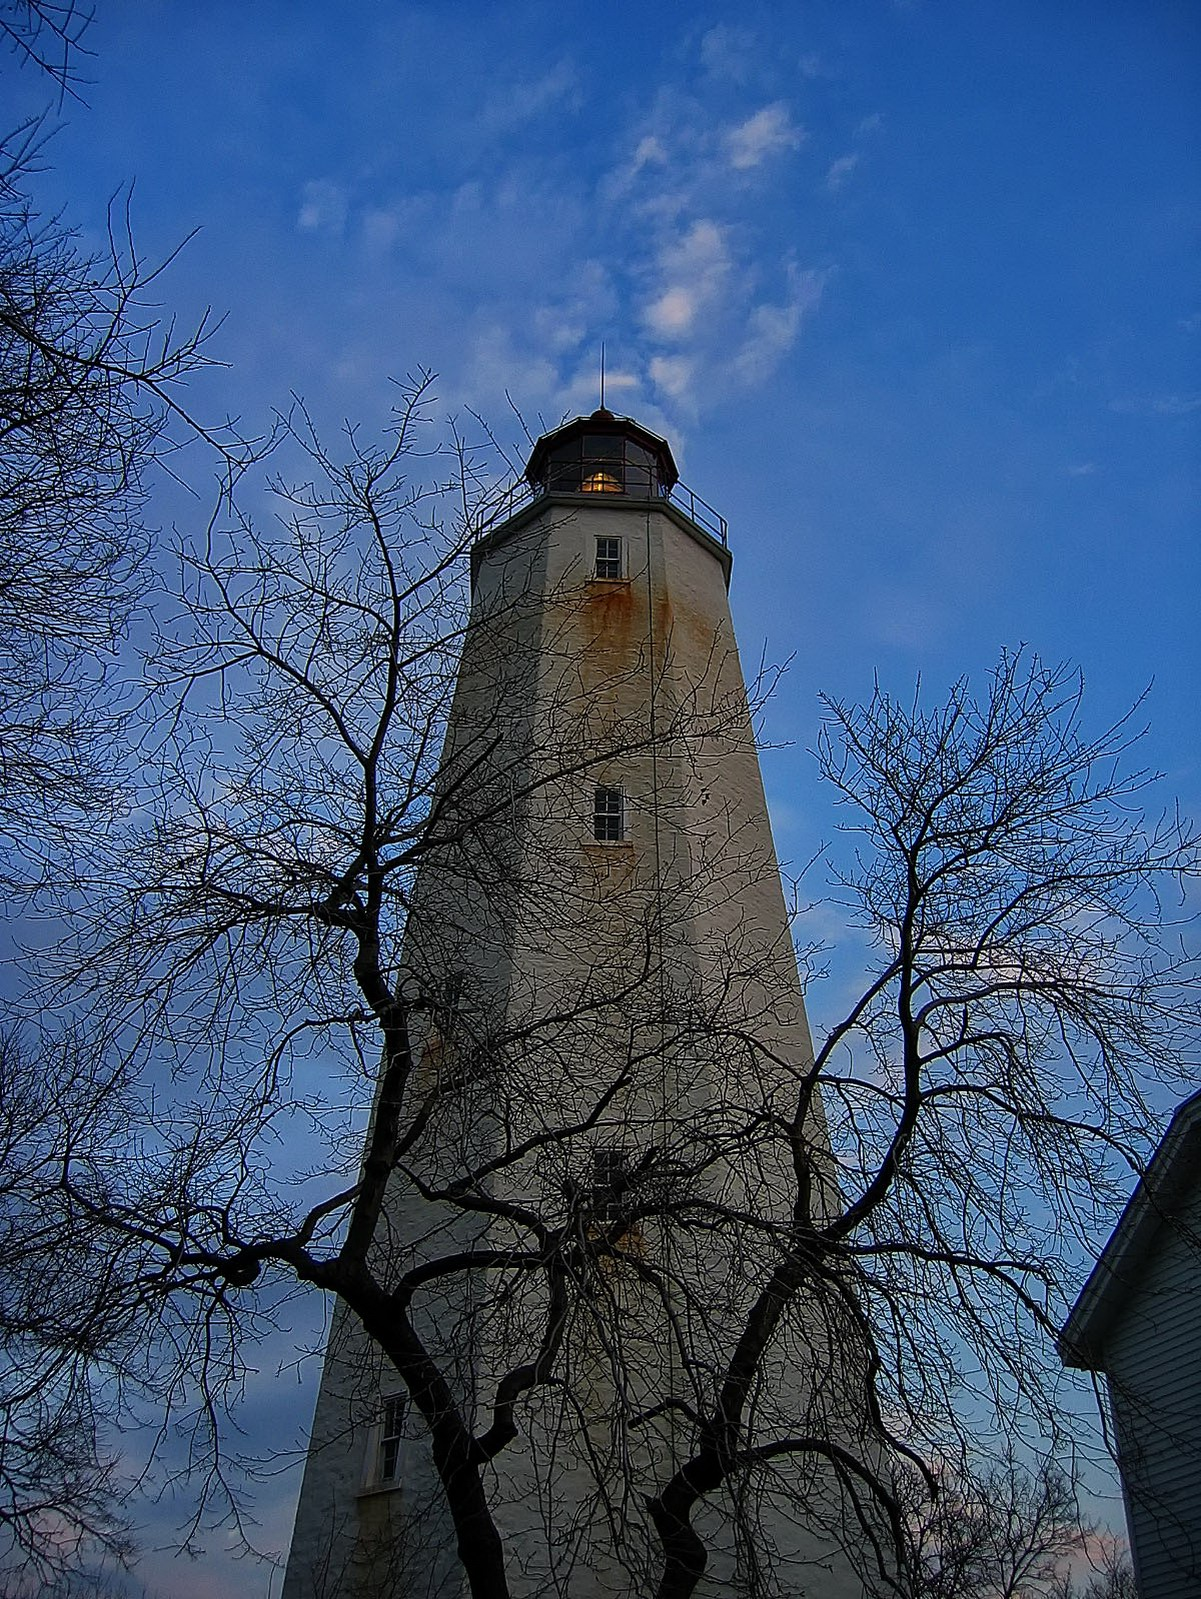 Sandy Hook Lighthouse 1764 still shines its light for all to see.